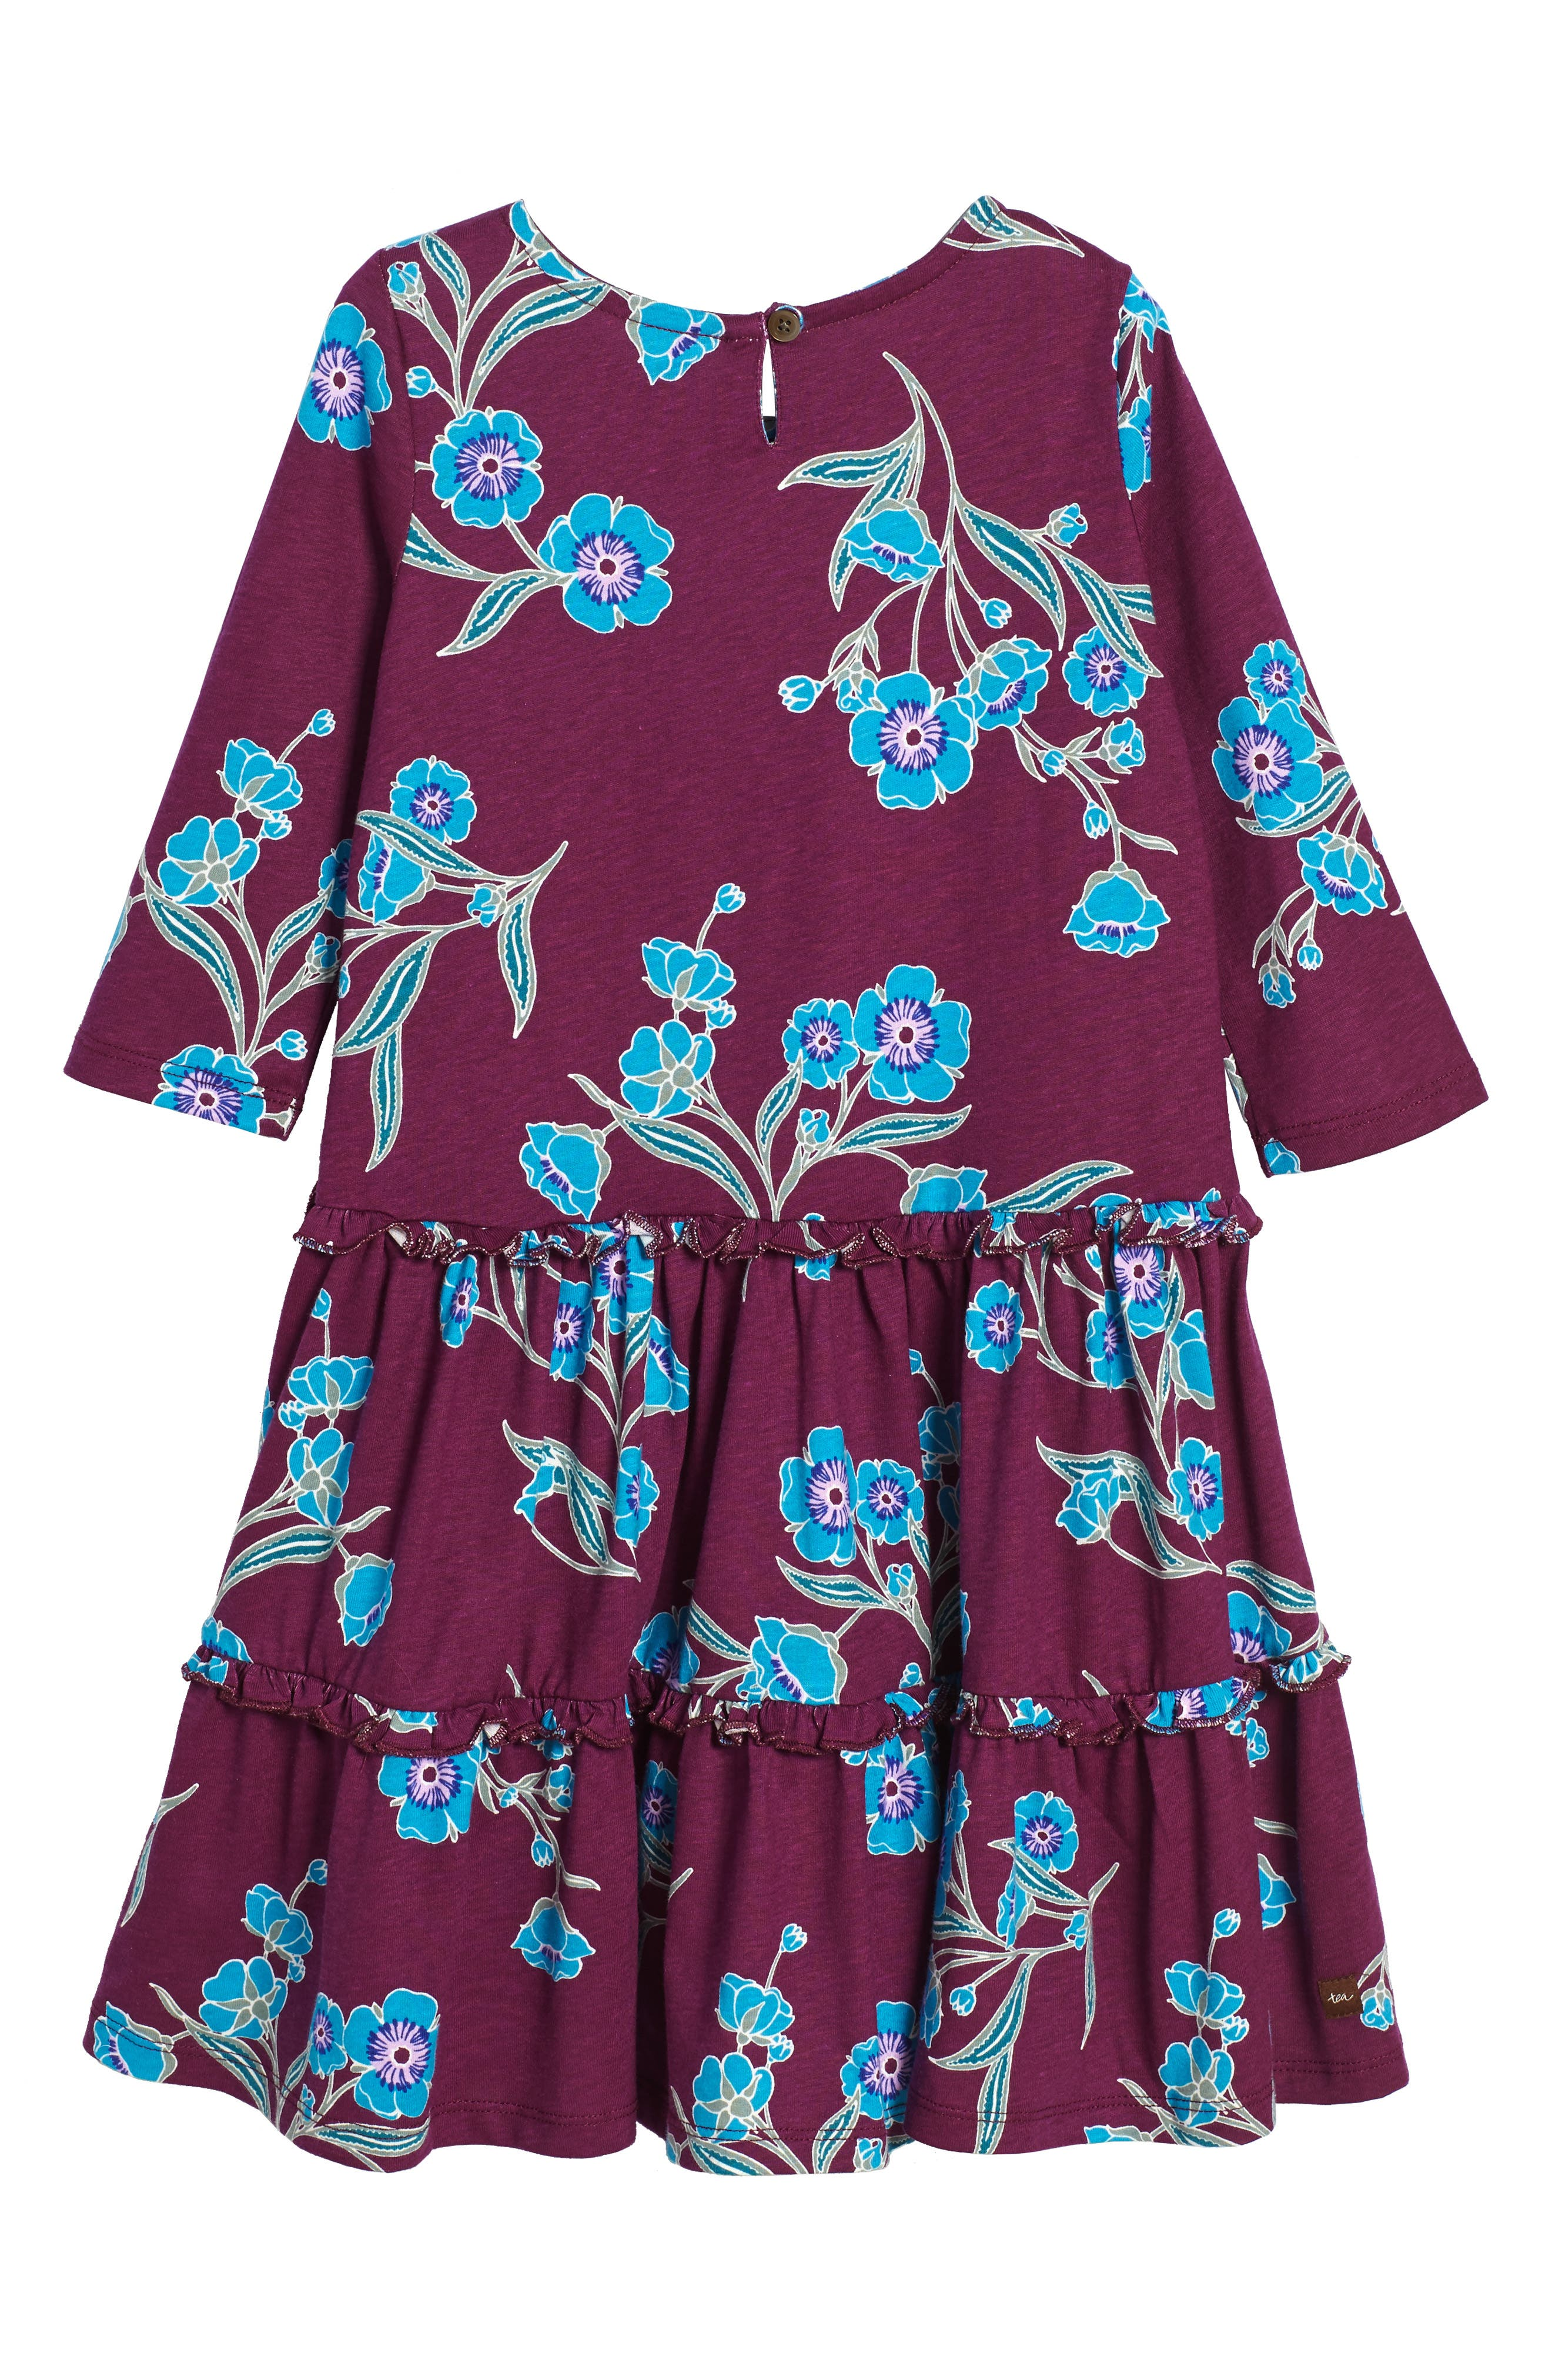 Marjorie Tiered Dress,                             Alternate thumbnail 2, color,                             Cosmic Berry